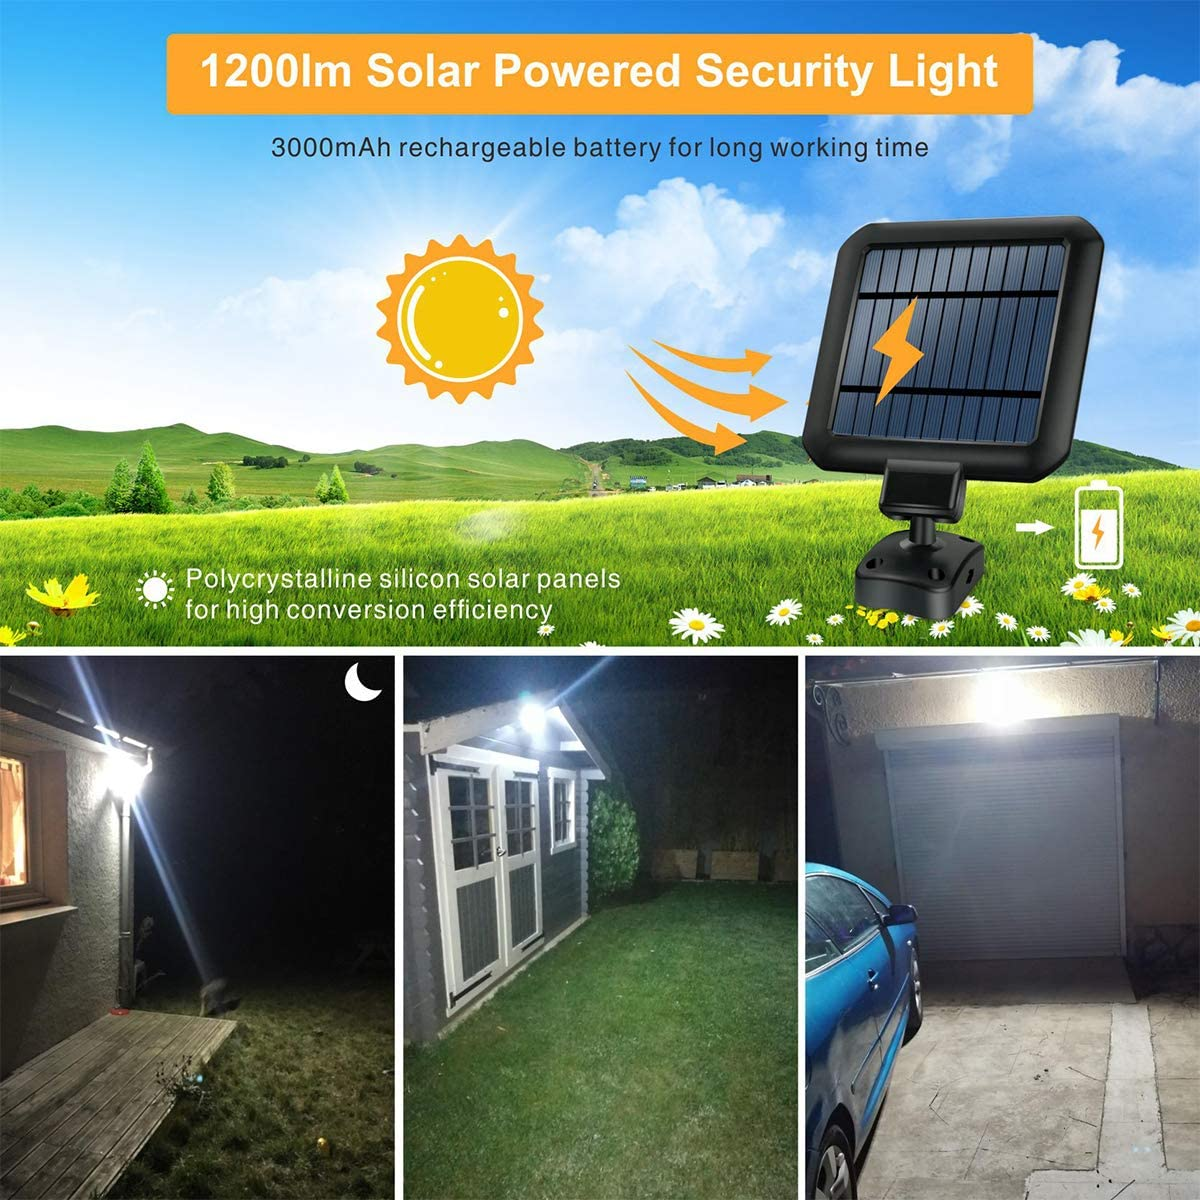 Solar Light Outdoor, STASUN 1200lm Motion Sensor Security Light with Wide Lighting Angle, 5000K, Adjustable Head, Easy-to-Install Outdoor Flood Light for Front Door, Yard, Garage